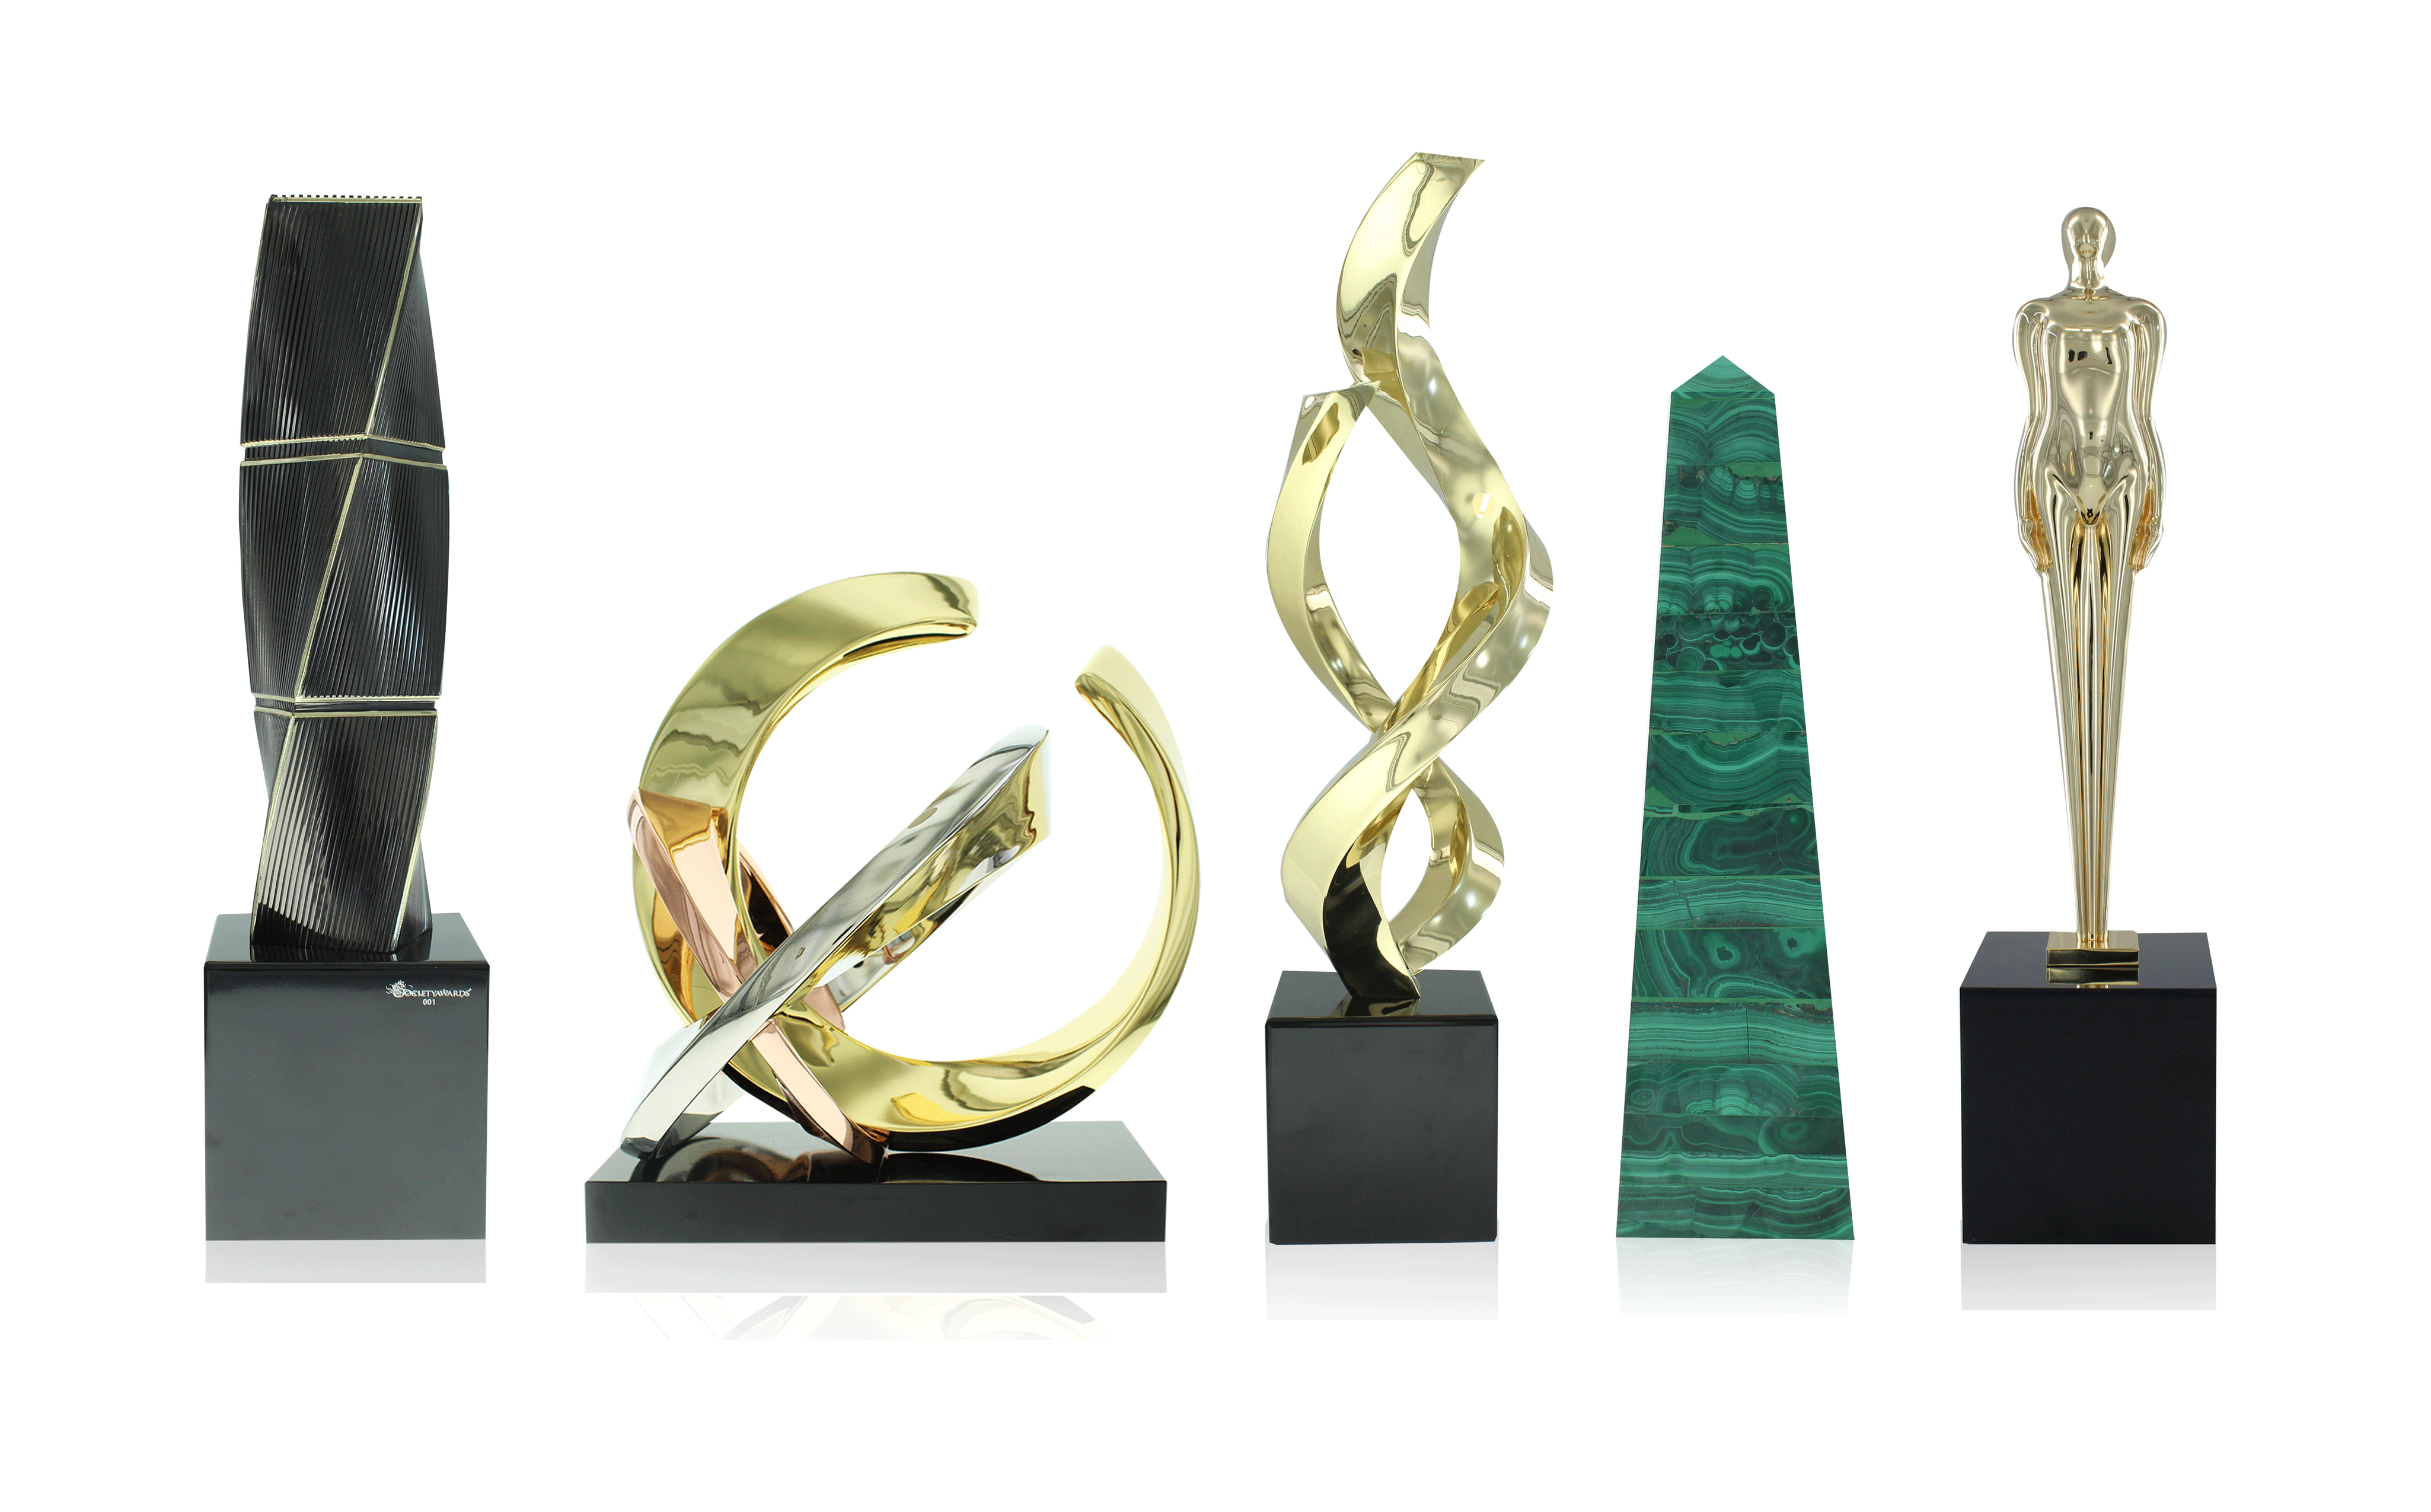 5 trophies from the World's First Limited Editions Collection of awards. From left to right: Twist Texture, Rings, Ribbons, Malachite Obelisk, Figure.